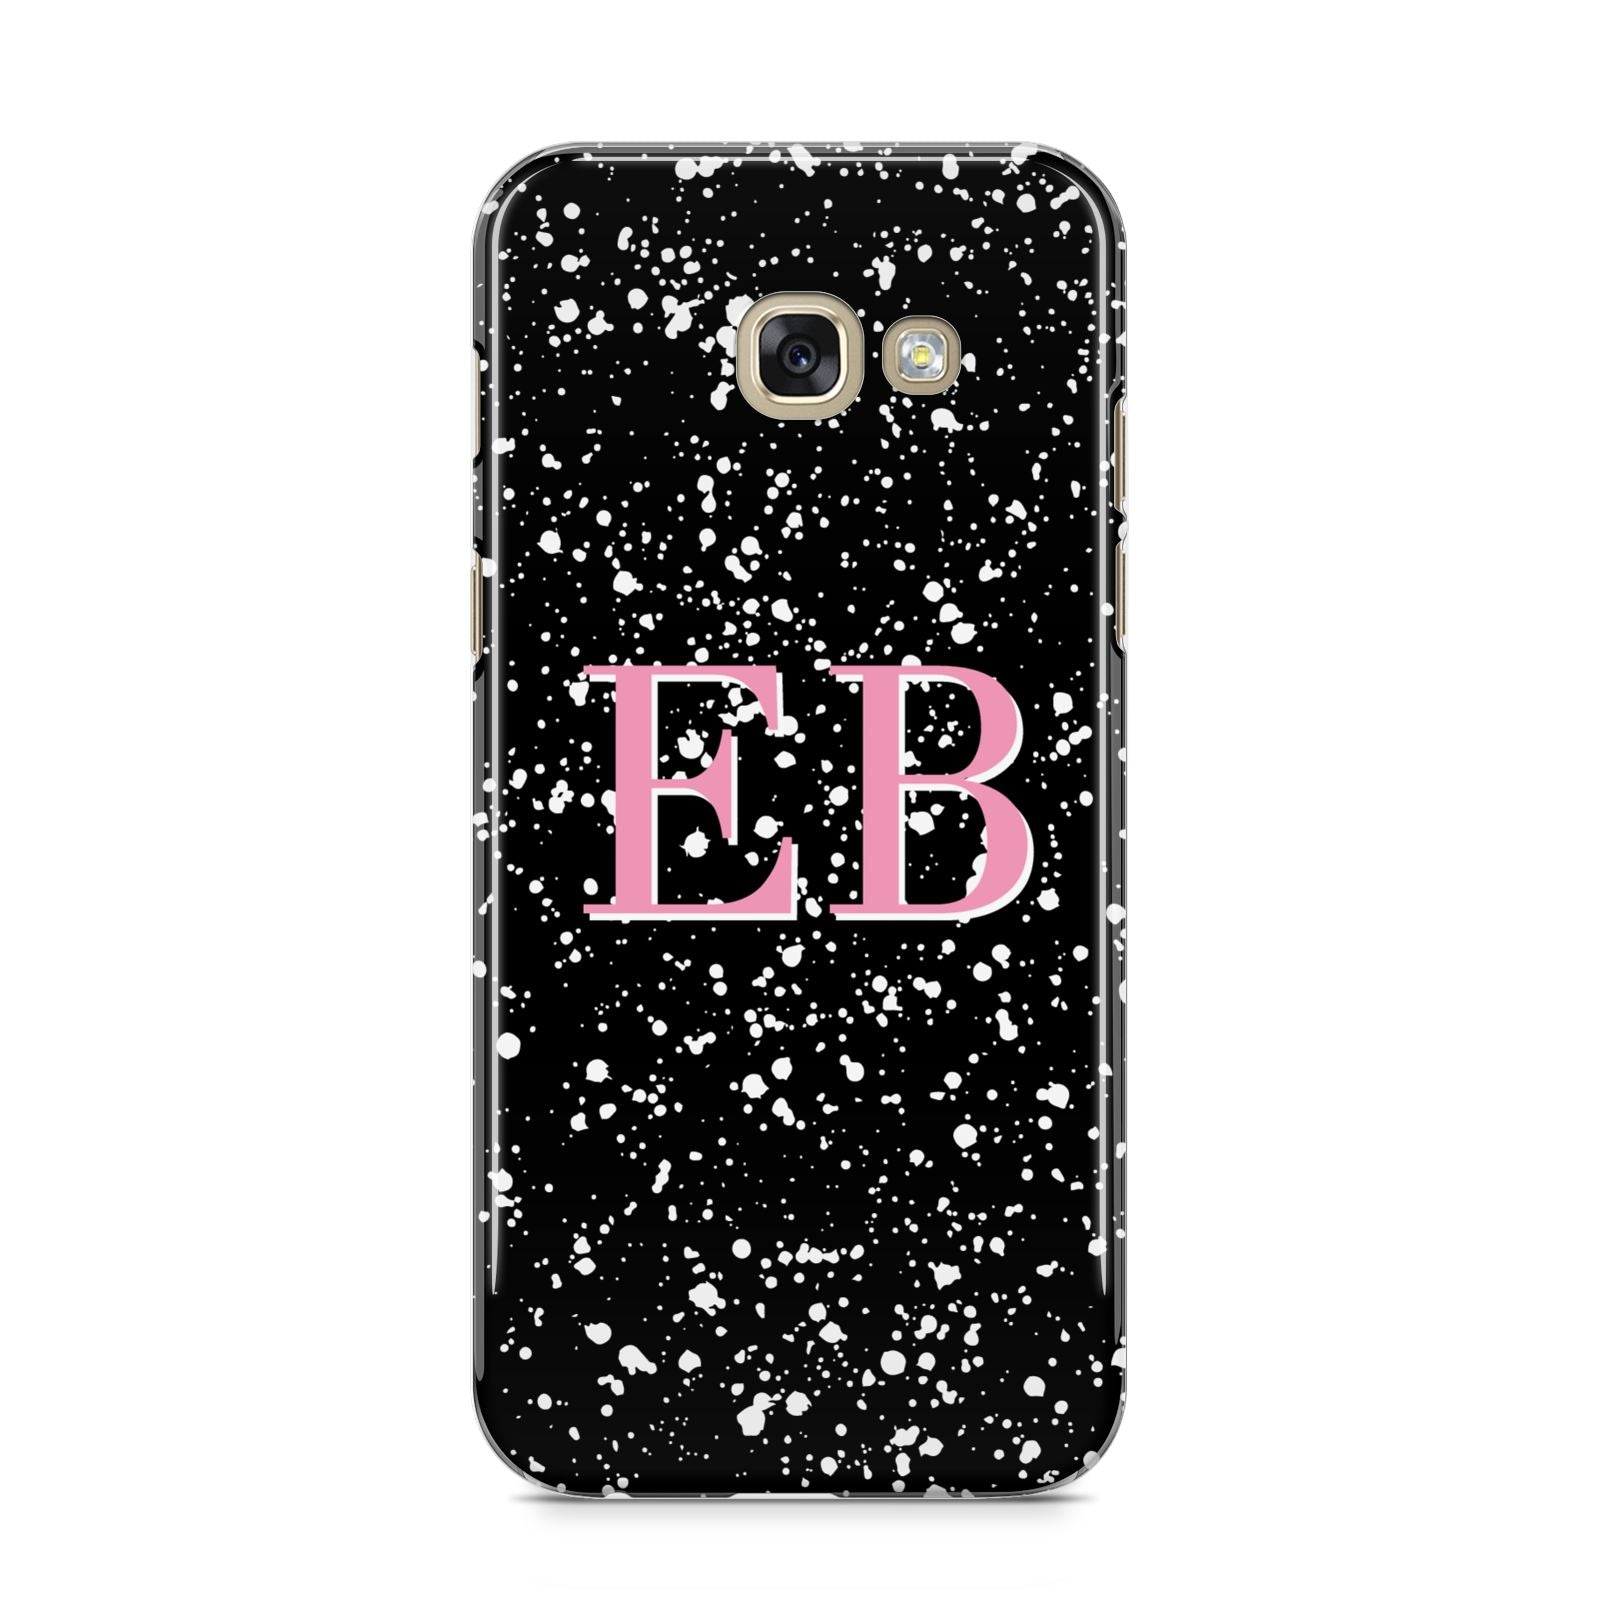 Personalised Black Ink Splat Initials Samsung Galaxy A5 2017 Case on gold phone